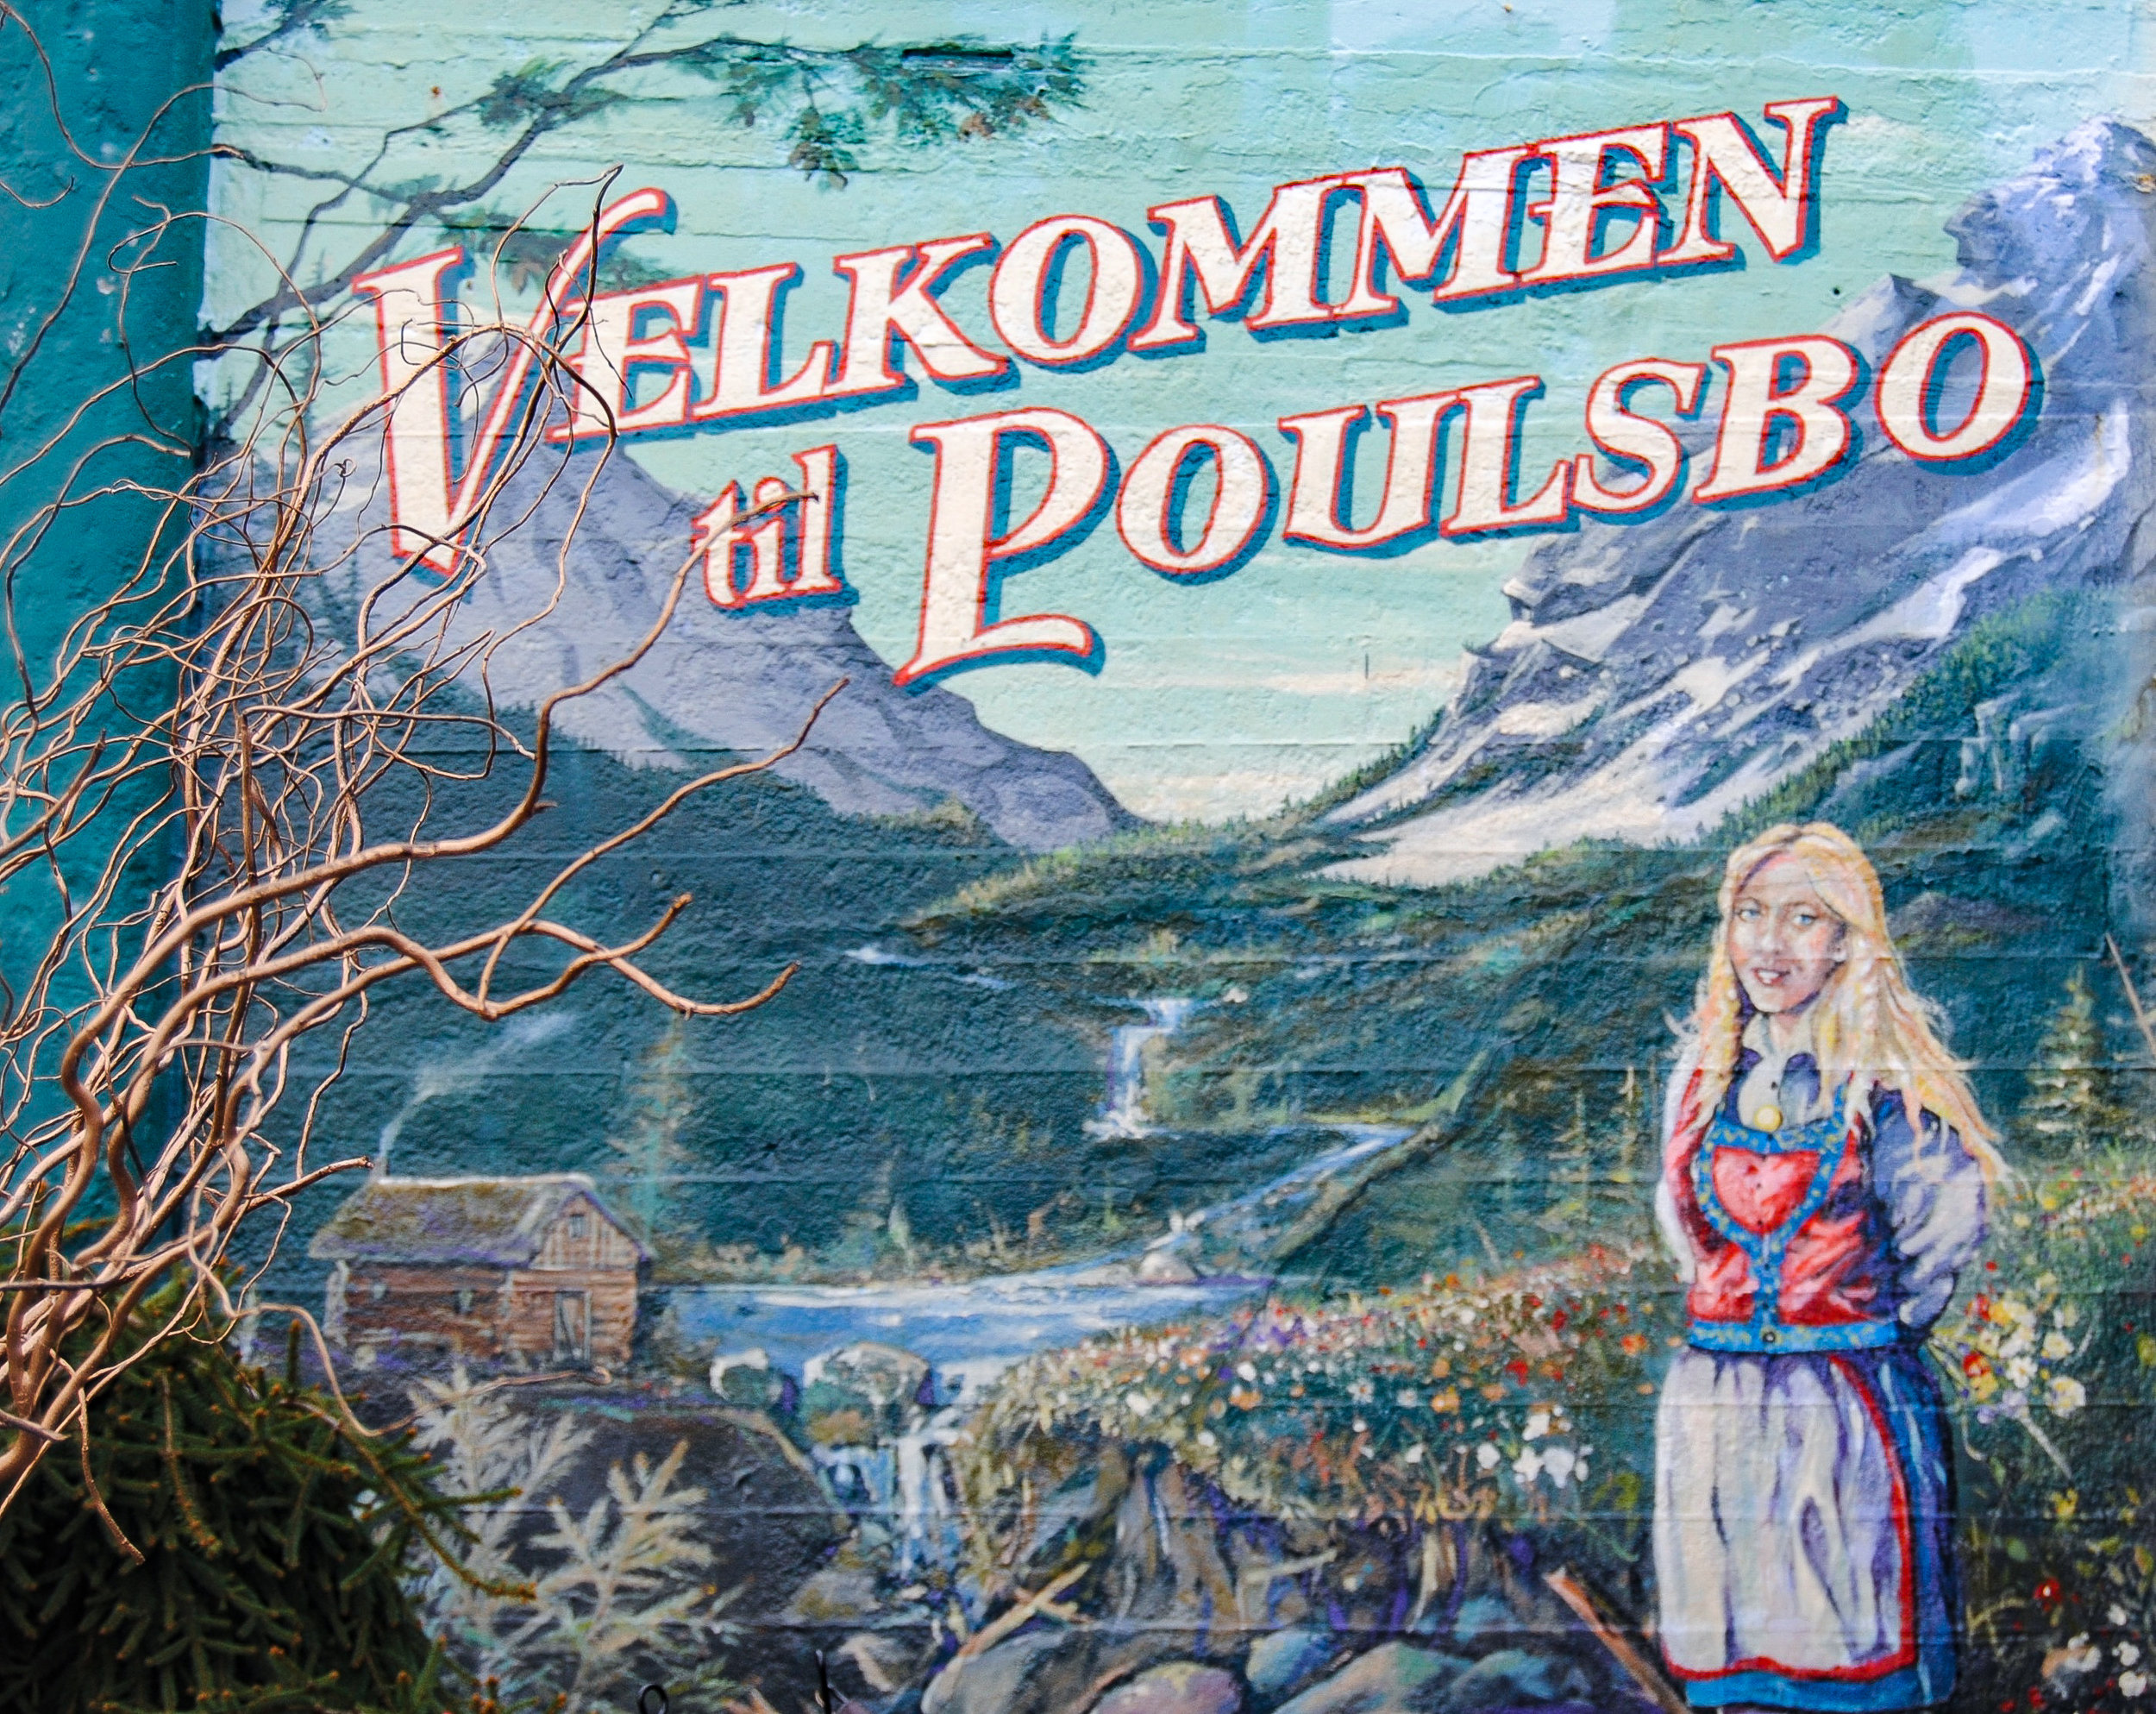 One of many murals - an ode to Poulsbo's Norwegian heritage